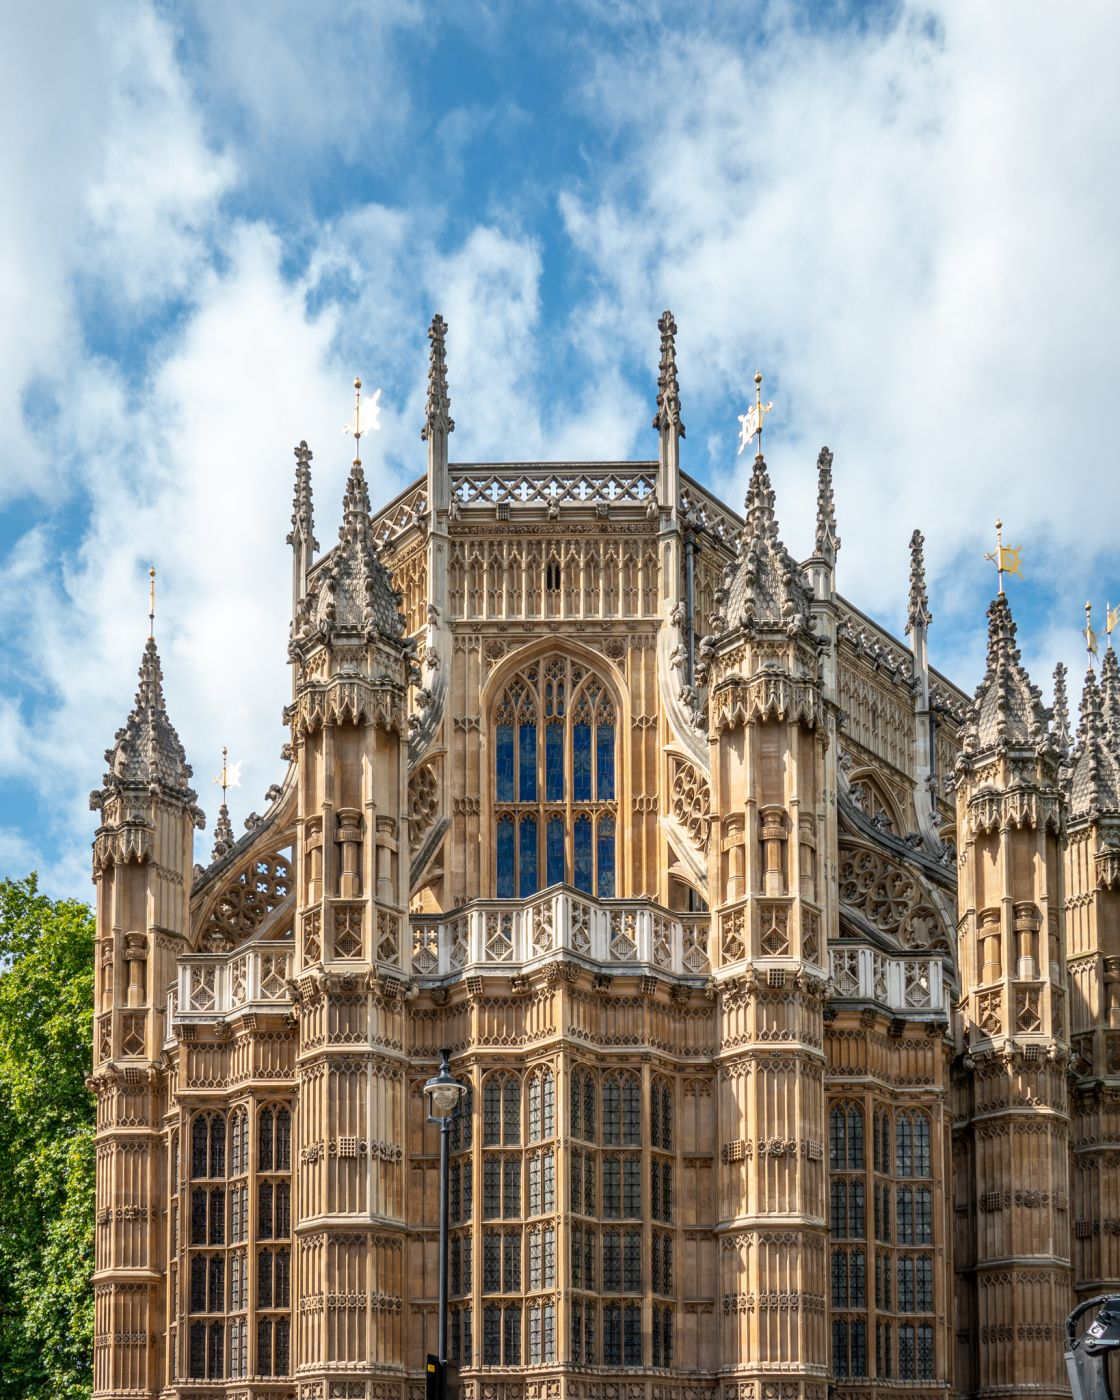 Westminster Abbey - Lady Chapel exterior, United Kingdom